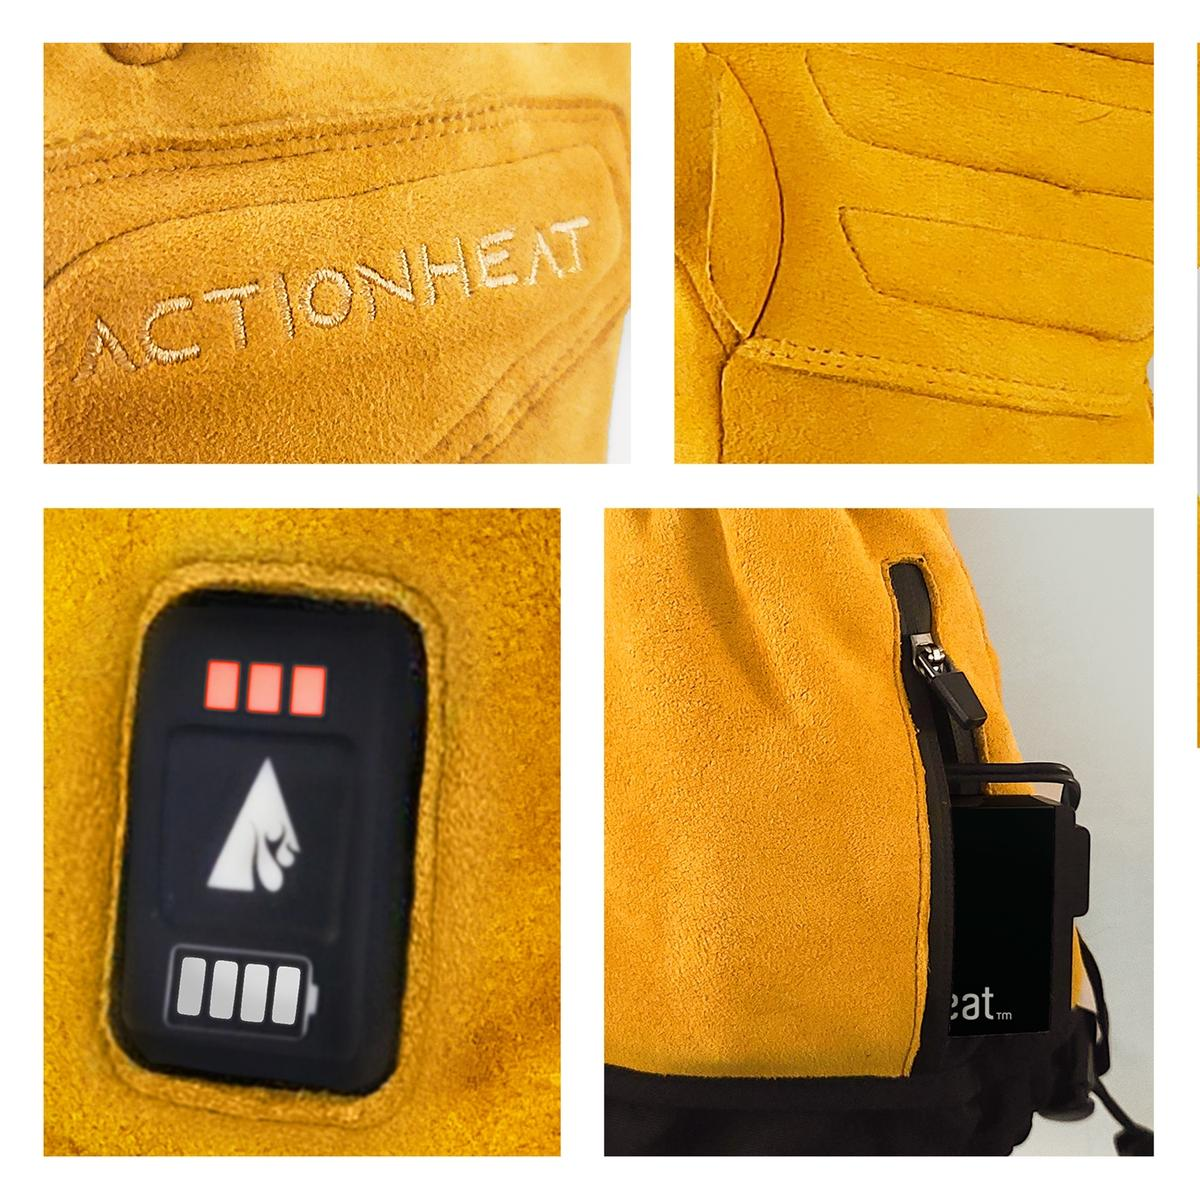 ActionHeat 7V Rugged Leather Heated Work Gloves - Full Set